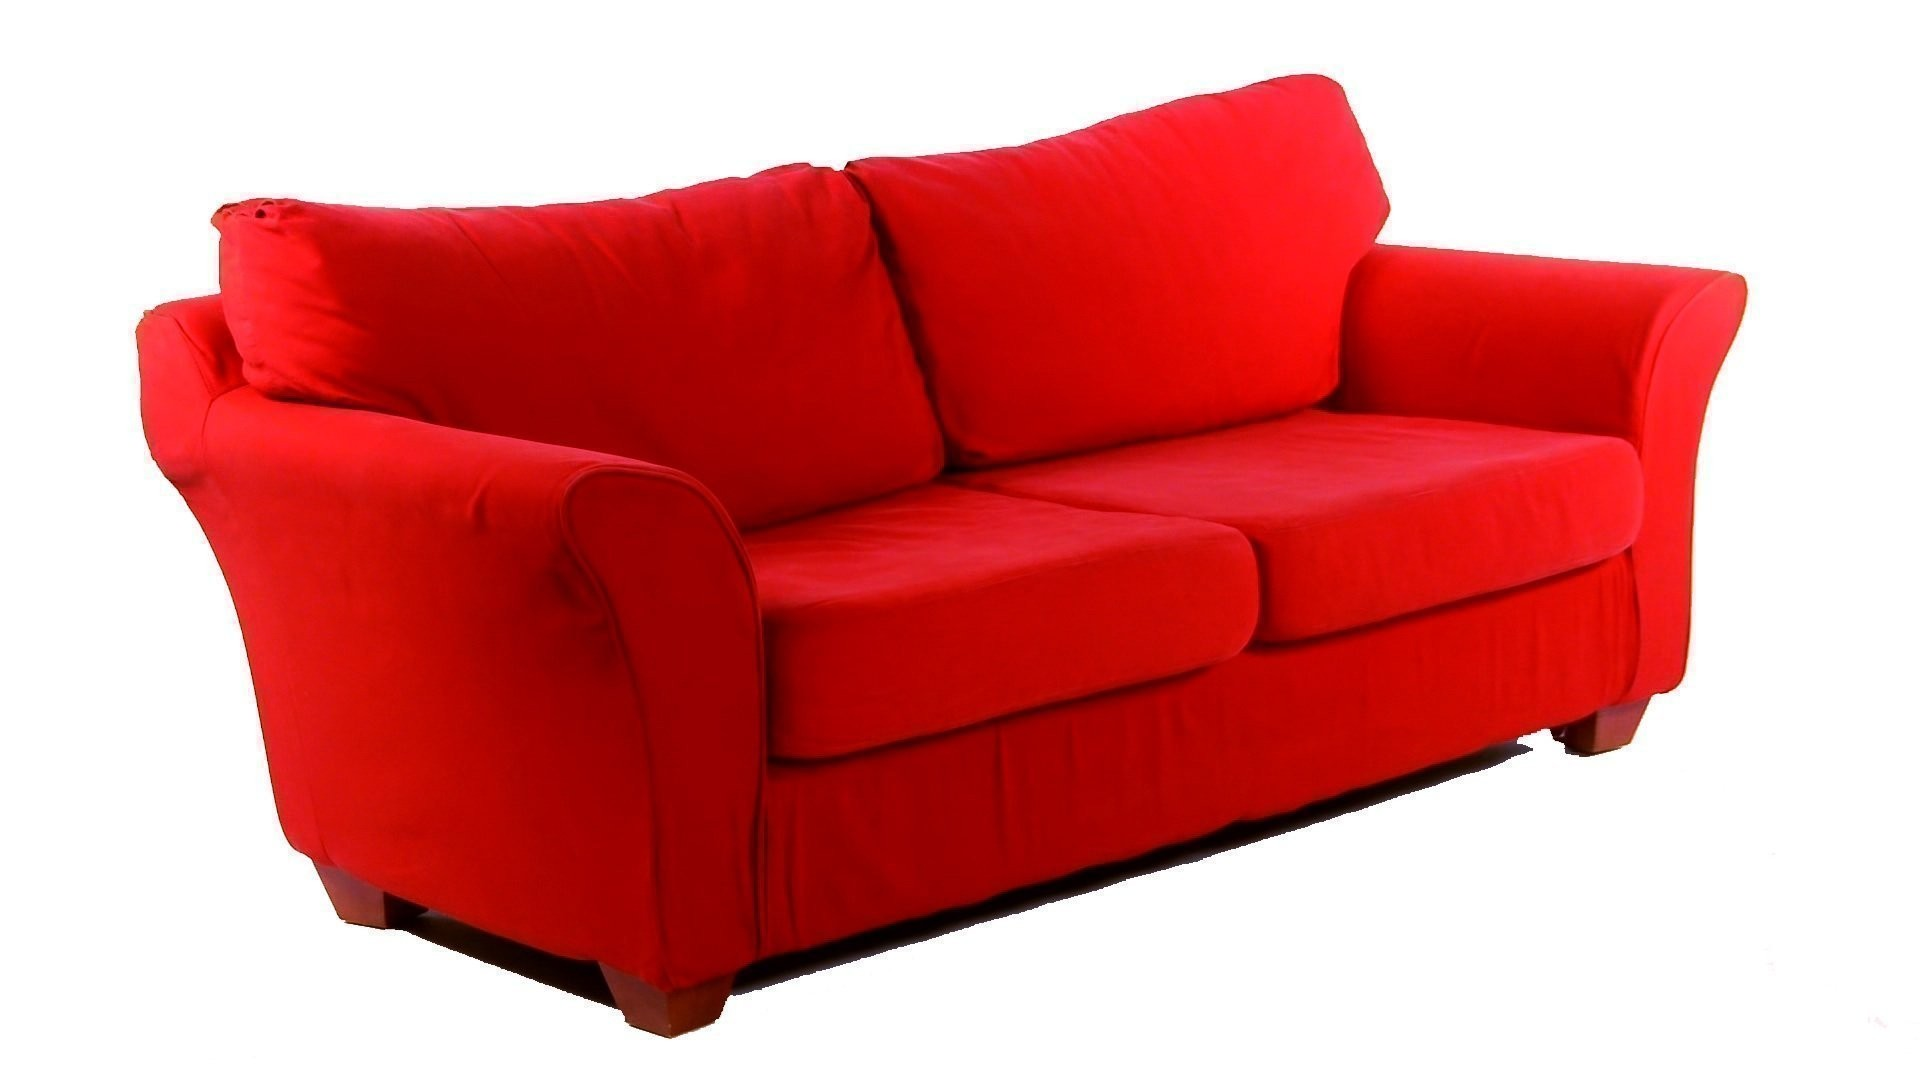 Red Couch tour stops at The Summit this afternoon - al.com